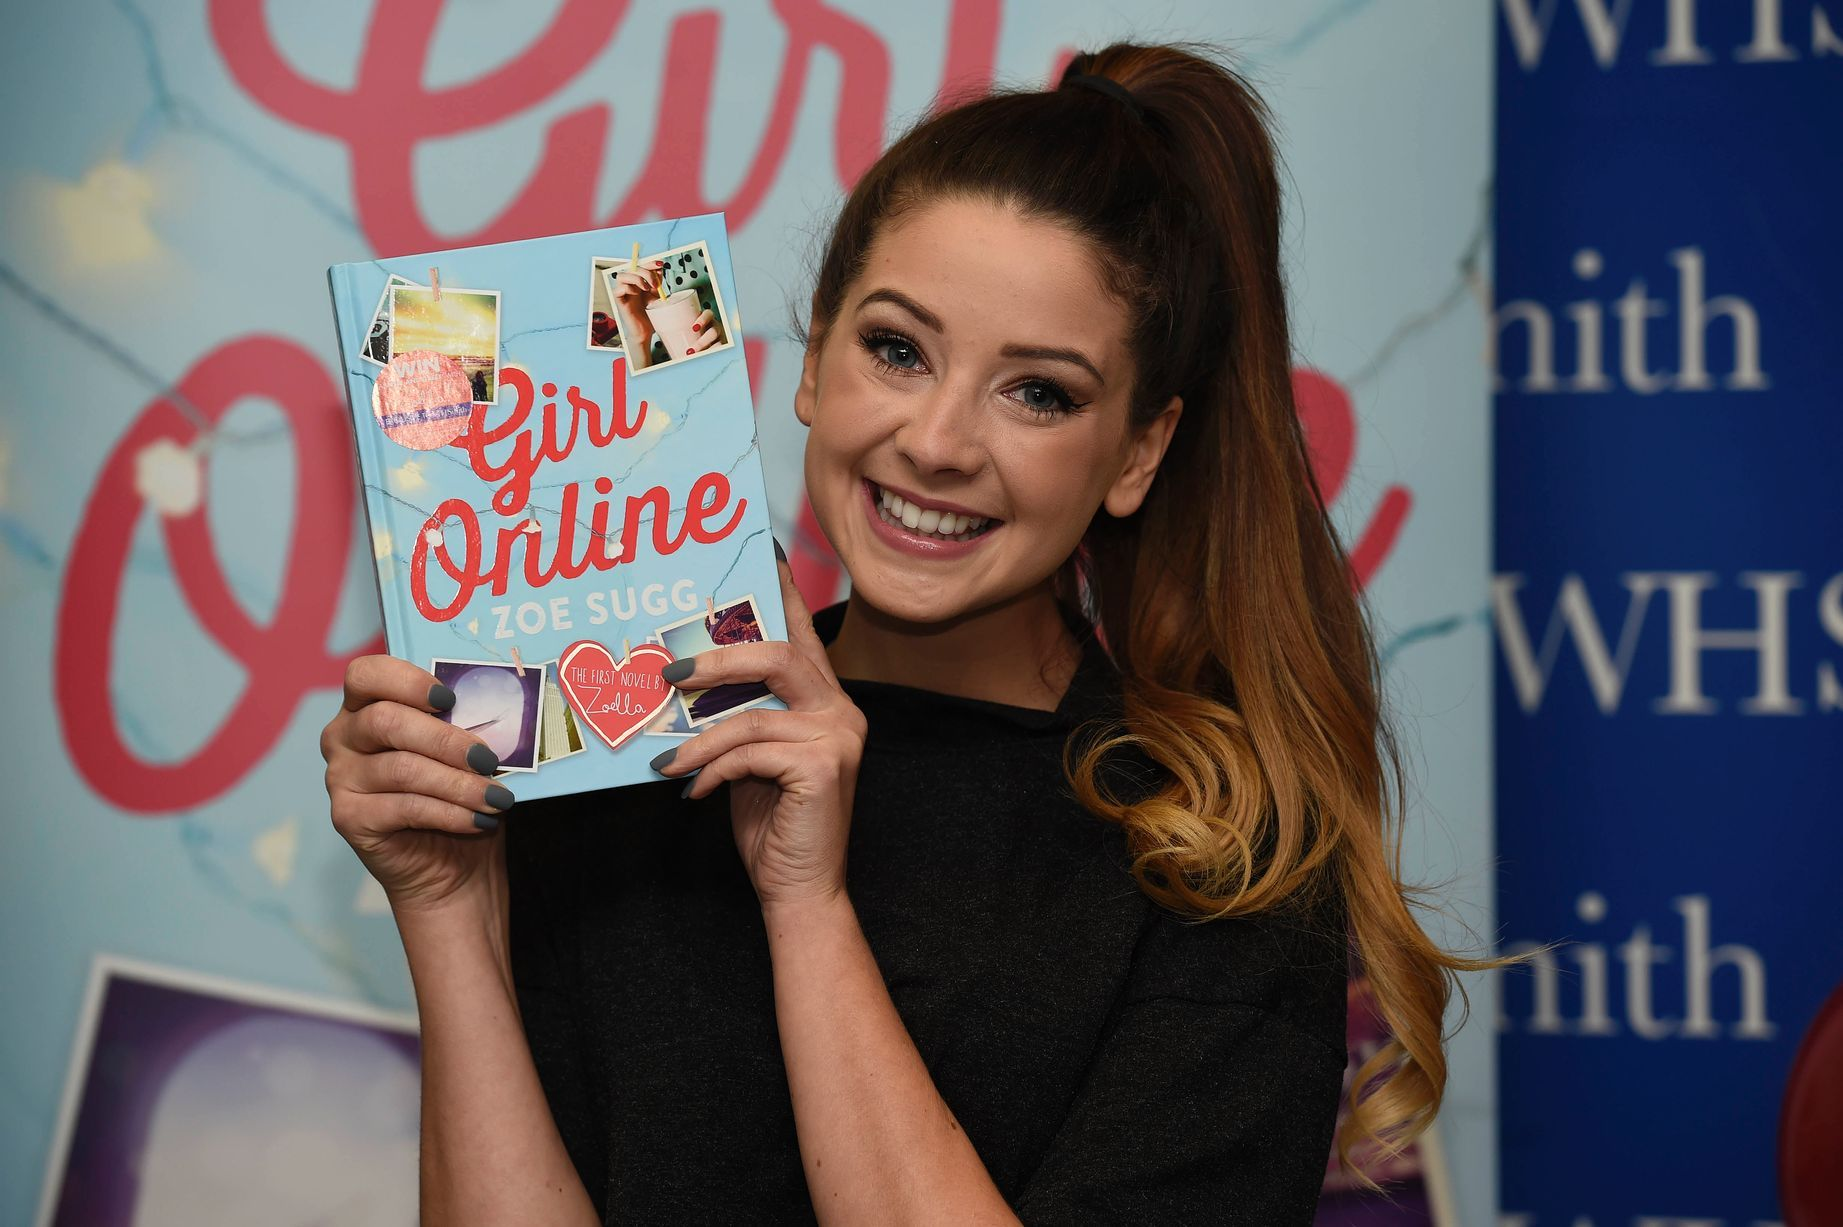 In Pictures: Beauty Blogger Zoella Greeted By Excited Fans At Book Signing